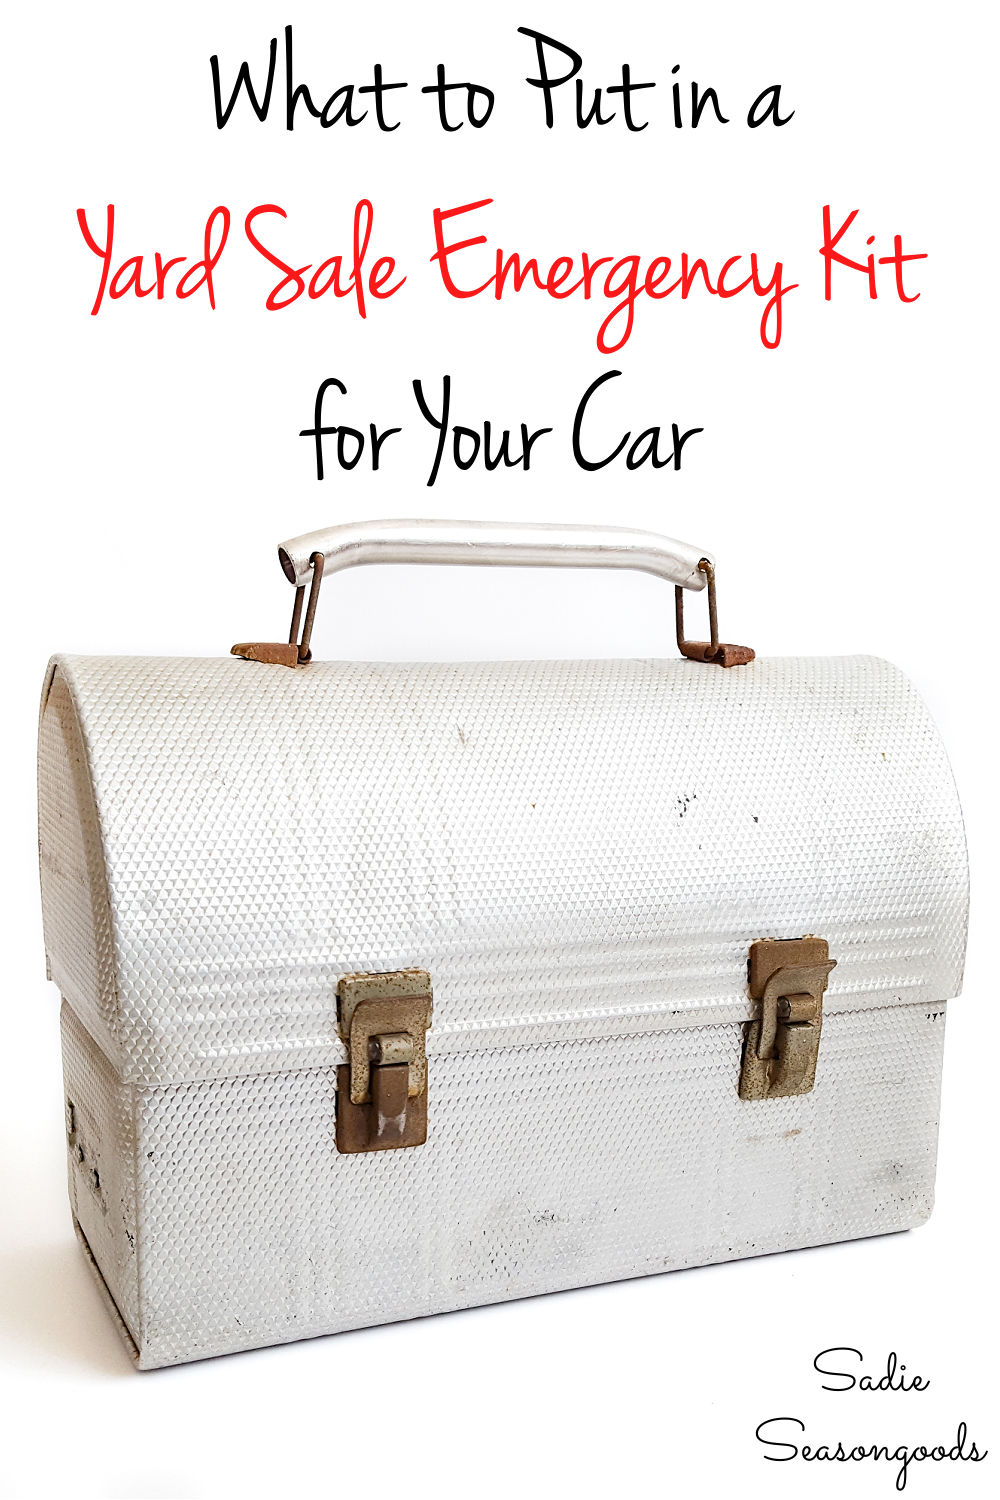 car emergency kit list for garage saling